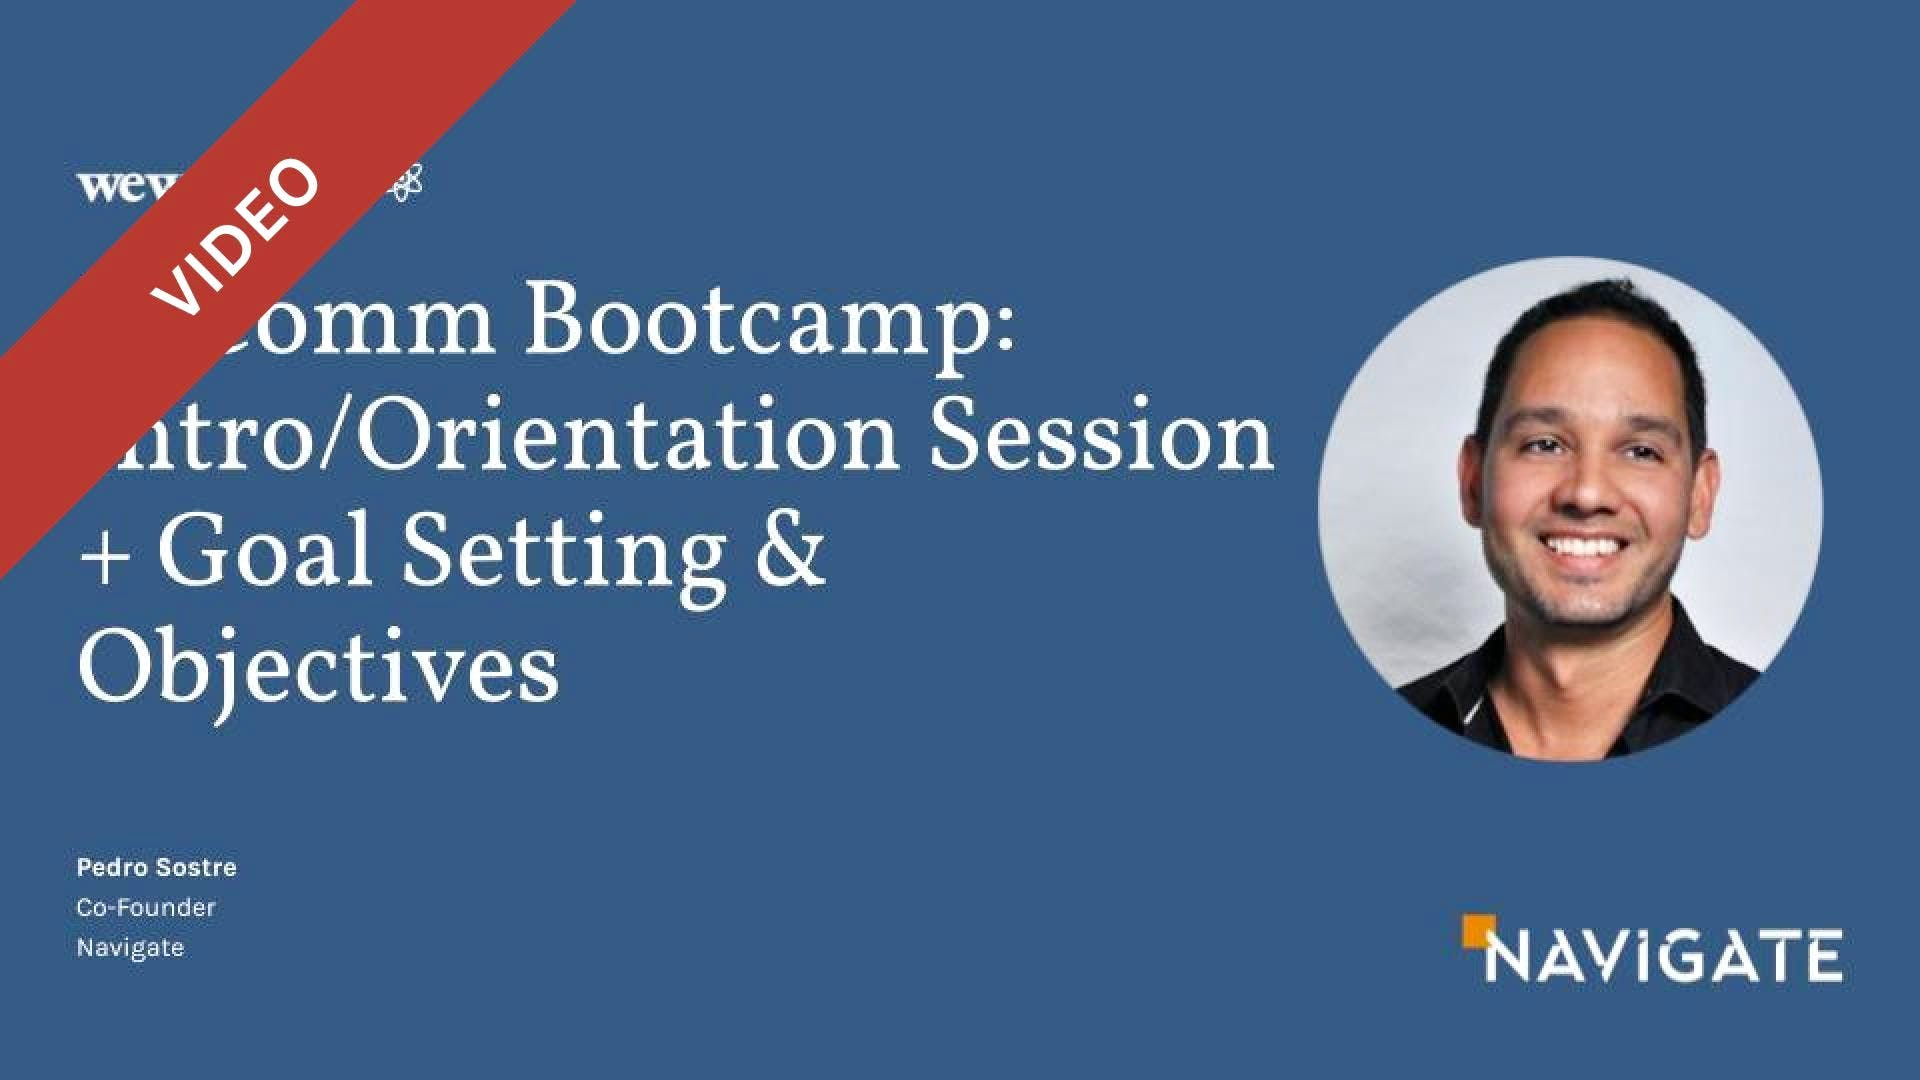 E-Comm Bootcamp: Intro/Orientation Session  + Goal Setting & Objectives